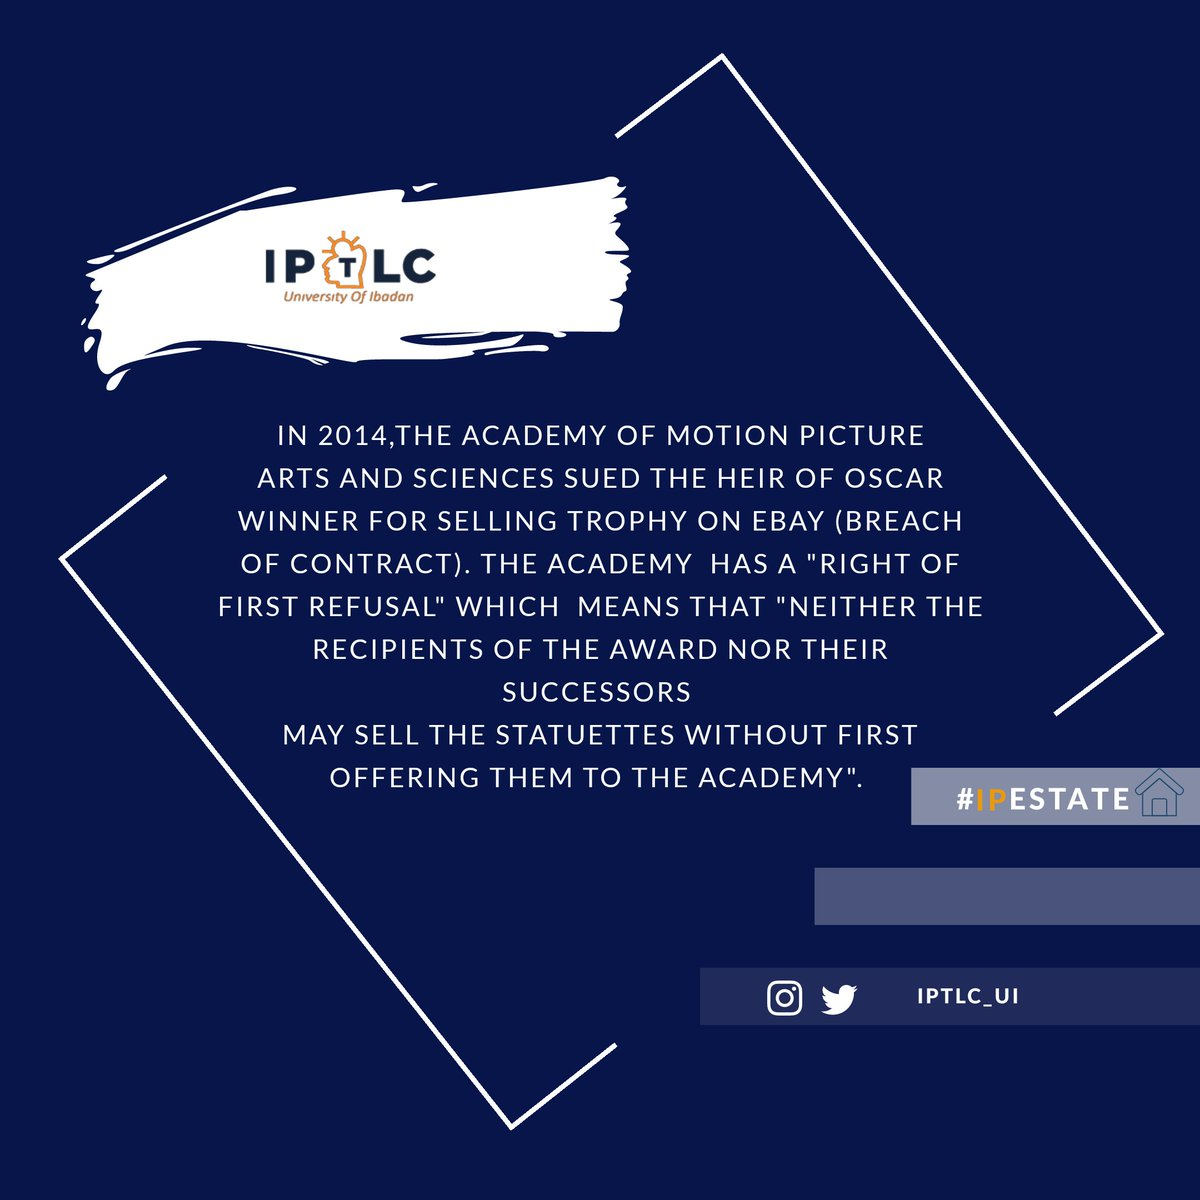 Another episode of our IP Estate Series   #IPestate #intellectualproperty #Oscars pic.twitter.com/PVD8K97fkN